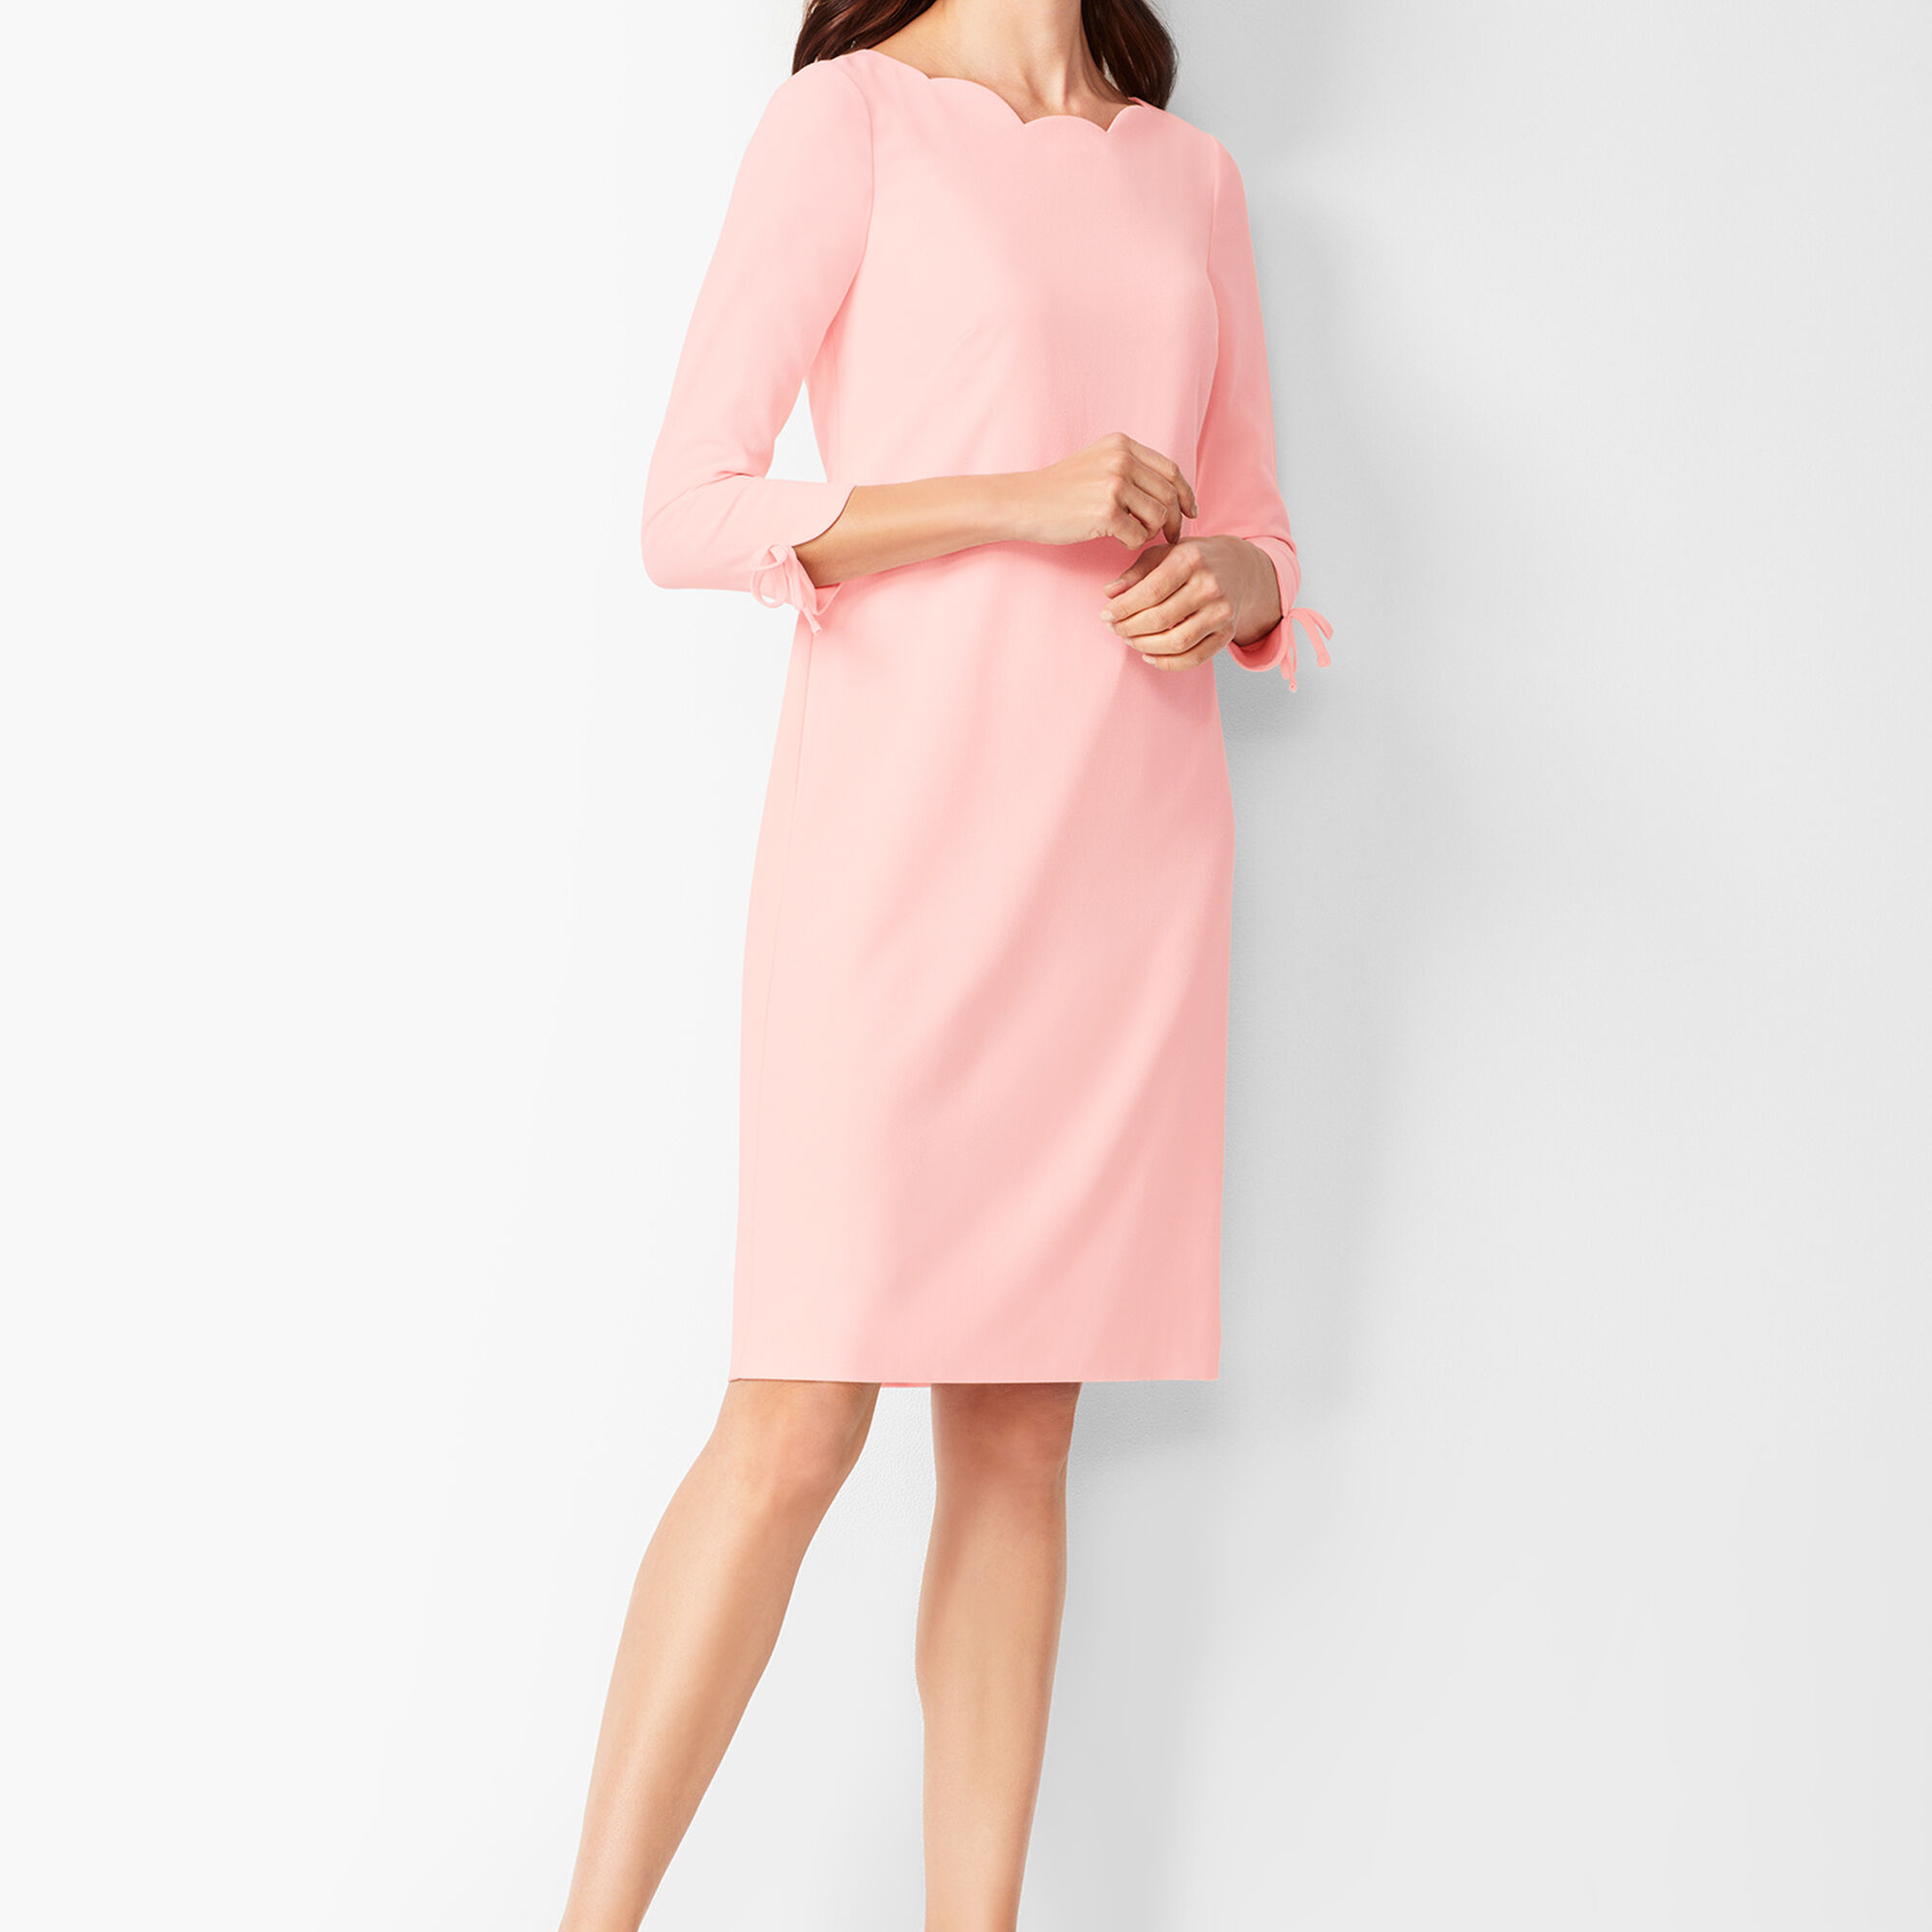 eb82e427e73 Crepe Shift Dress - Solid Opens a New Window.